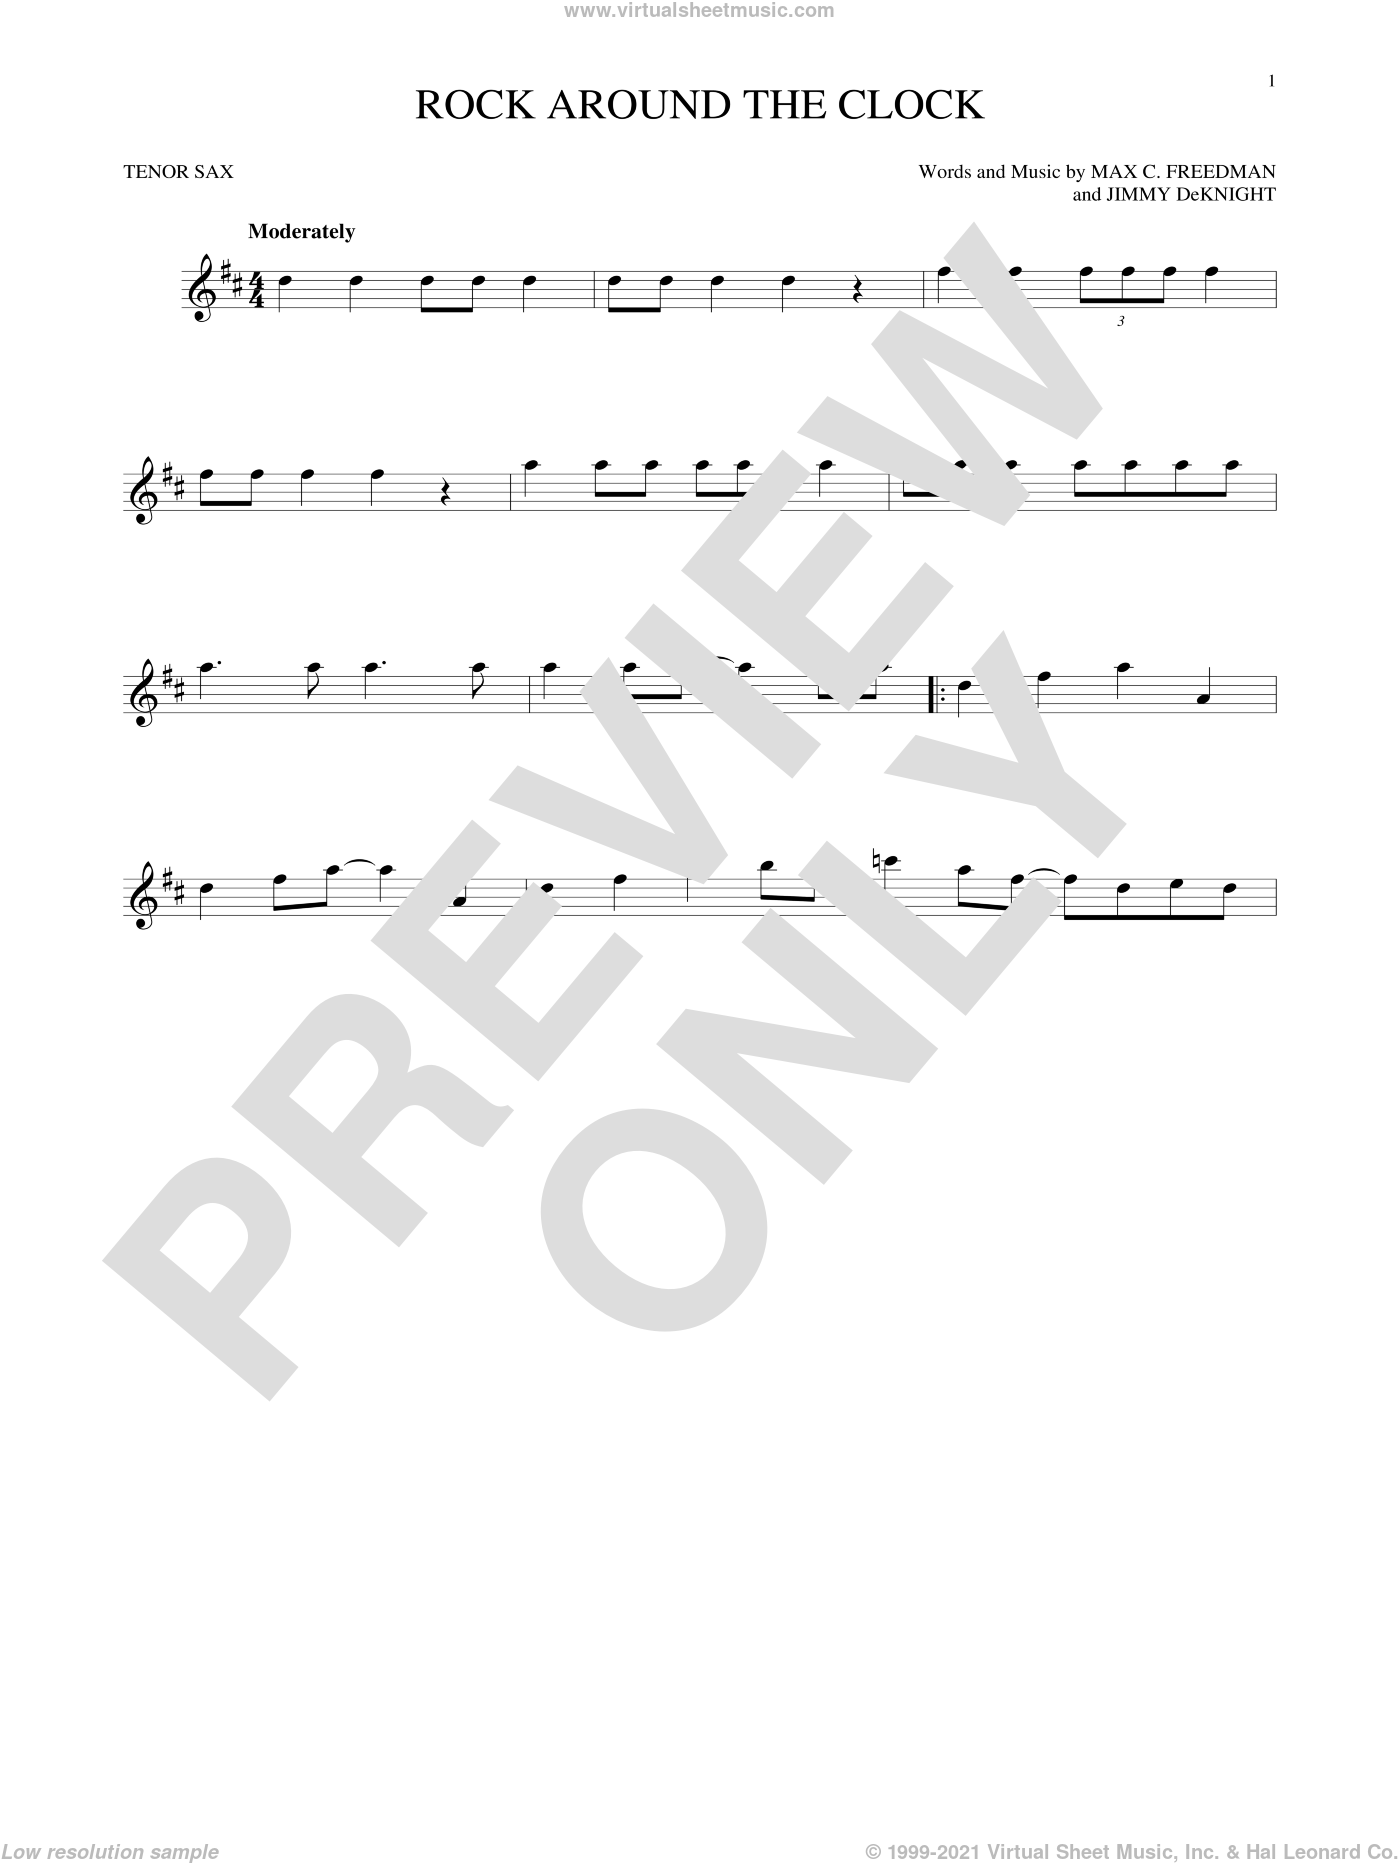 Rock Around The Clock sheet music for tenor saxophone solo by Bill Haley & His Comets, Jimmy DeKnight and Max C. Freedman, intermediate